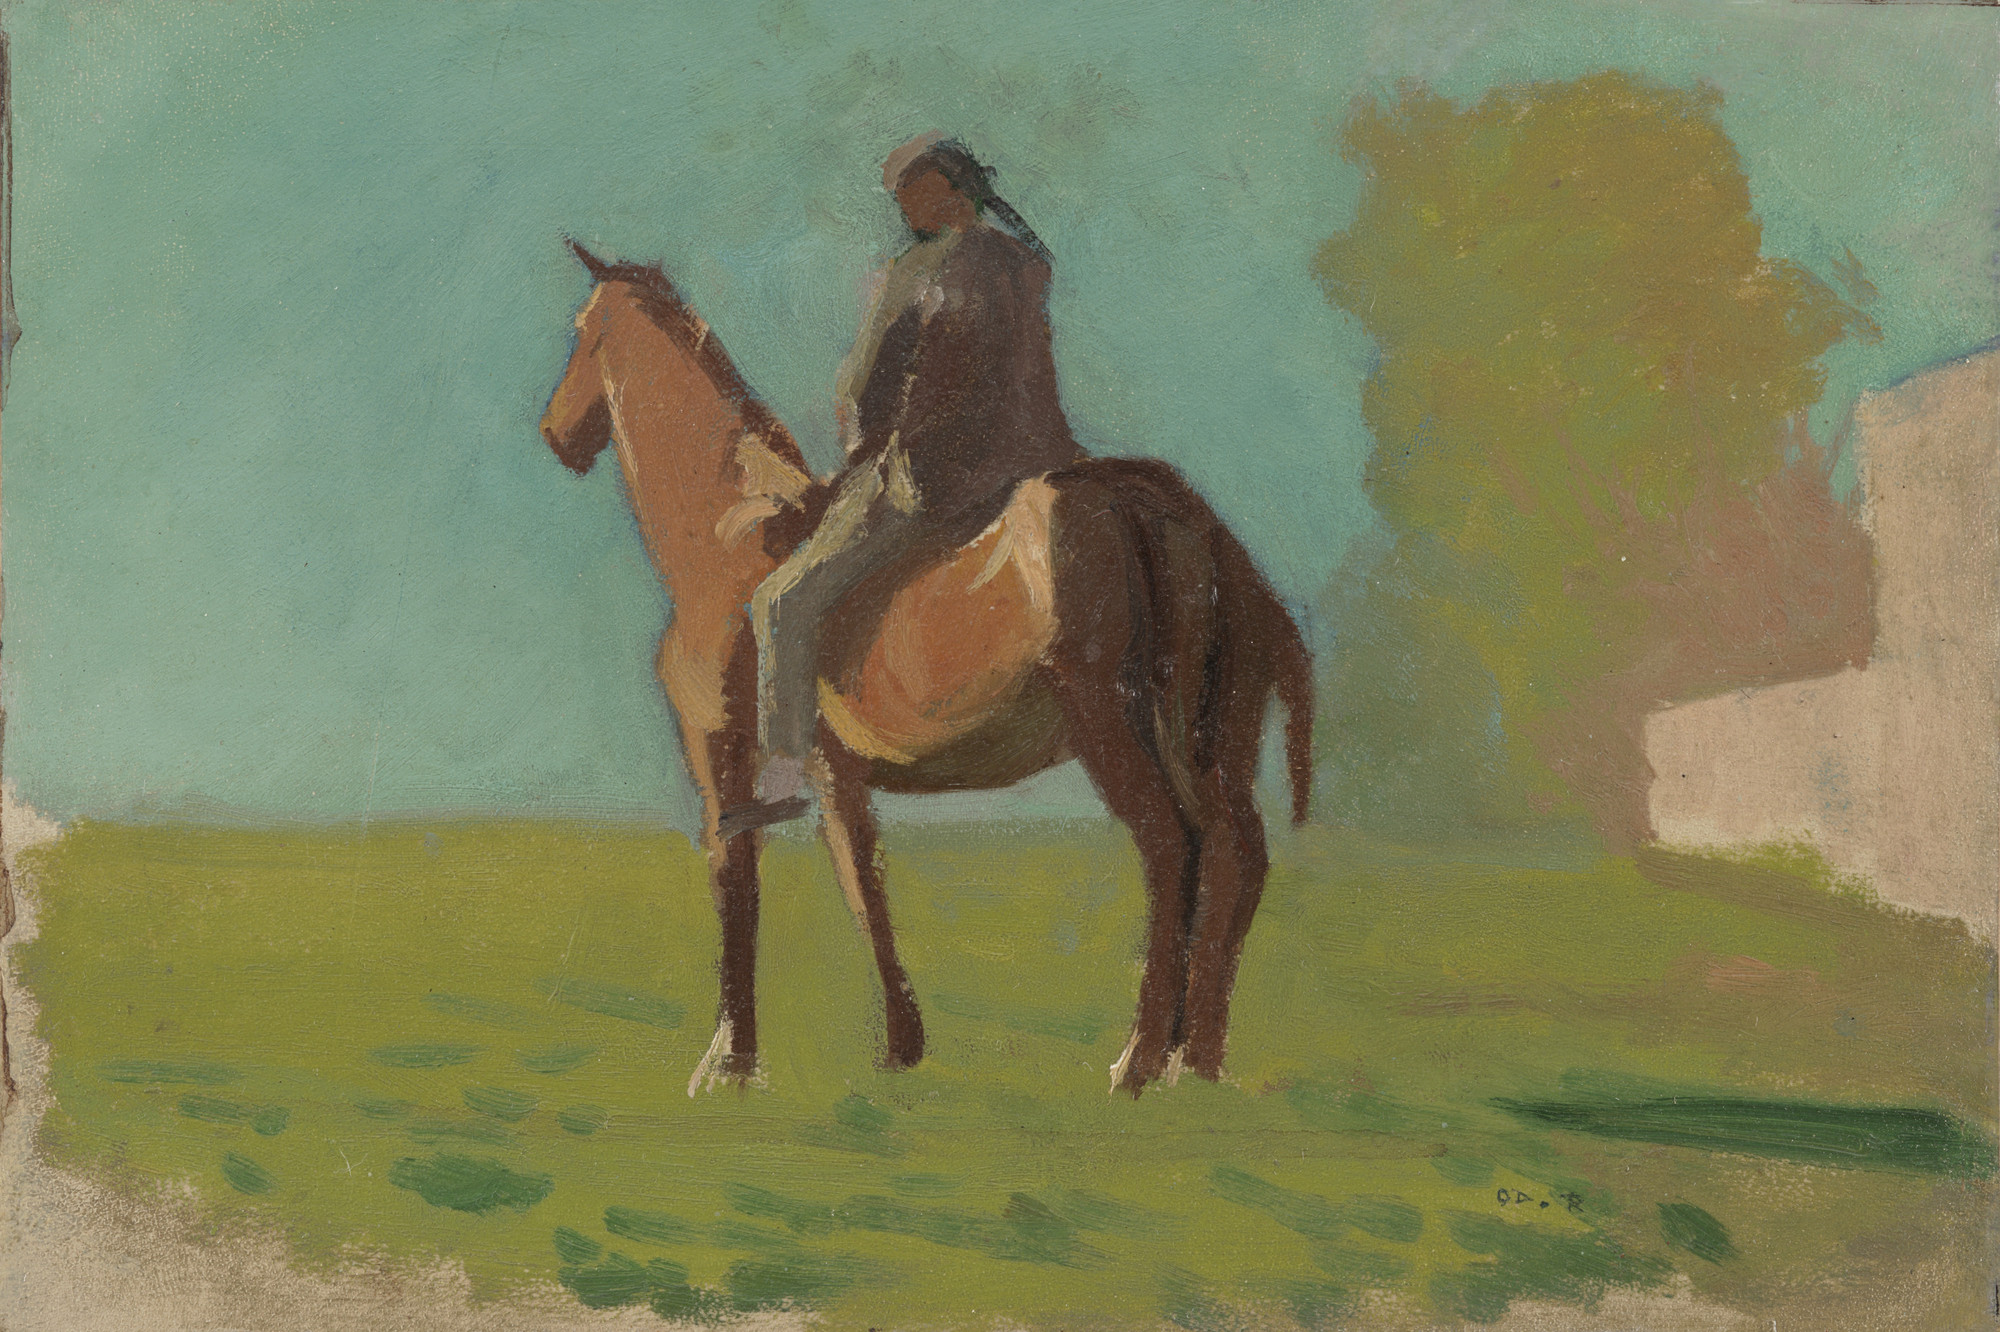 Odilon Redon. Apache (Man on Horseback). c. 1875